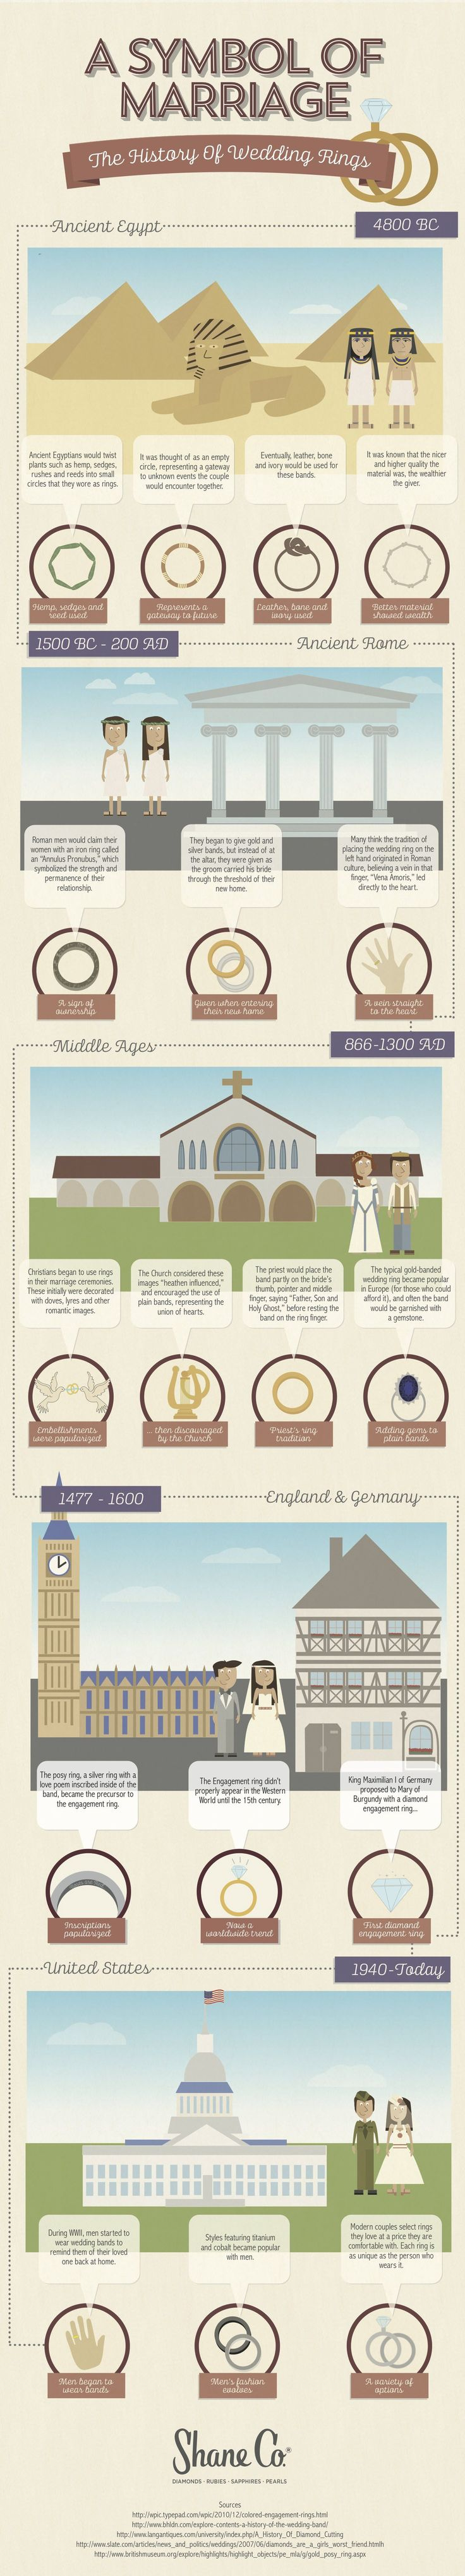 a symbol of marriage the history of wedding rings - History Of Wedding Rings